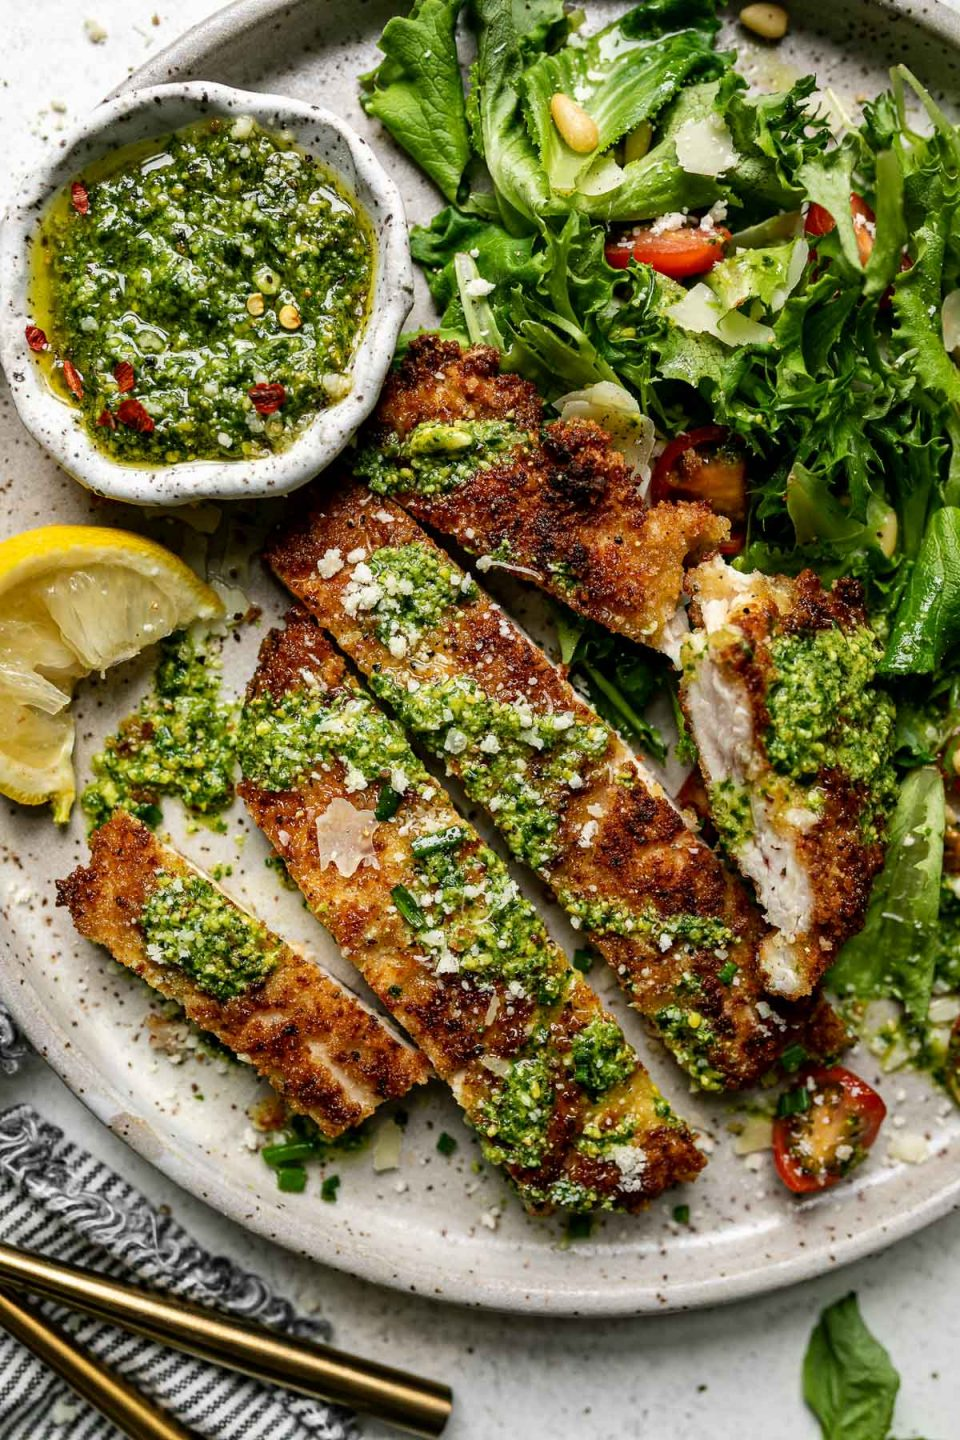 Sliced oparmsean chicken breast, topped with pesto & parmesan cheese, on a large plate with a green salad & a small bowl of pesto. The plate sits atop a white surface, next to a gray striped linen napkin.